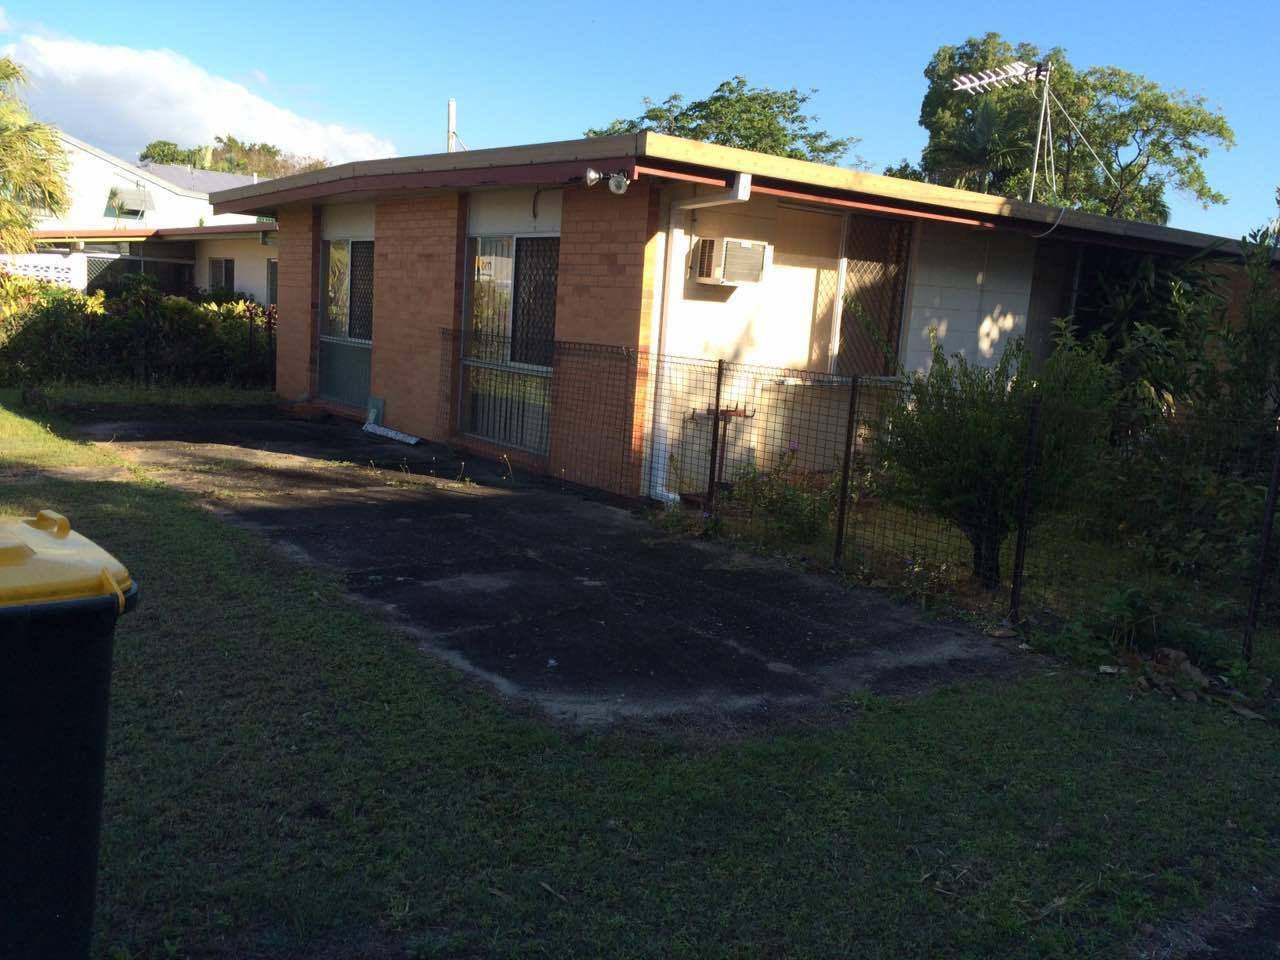 #0776C4 121 Buchan Street Bungalow QLD 4870 Block Of Units For  Highly Rated 9379 Air Conditioning Units Cairns wallpapers with 1280x960 px on helpvideos.info - Air Conditioners, Air Coolers and more